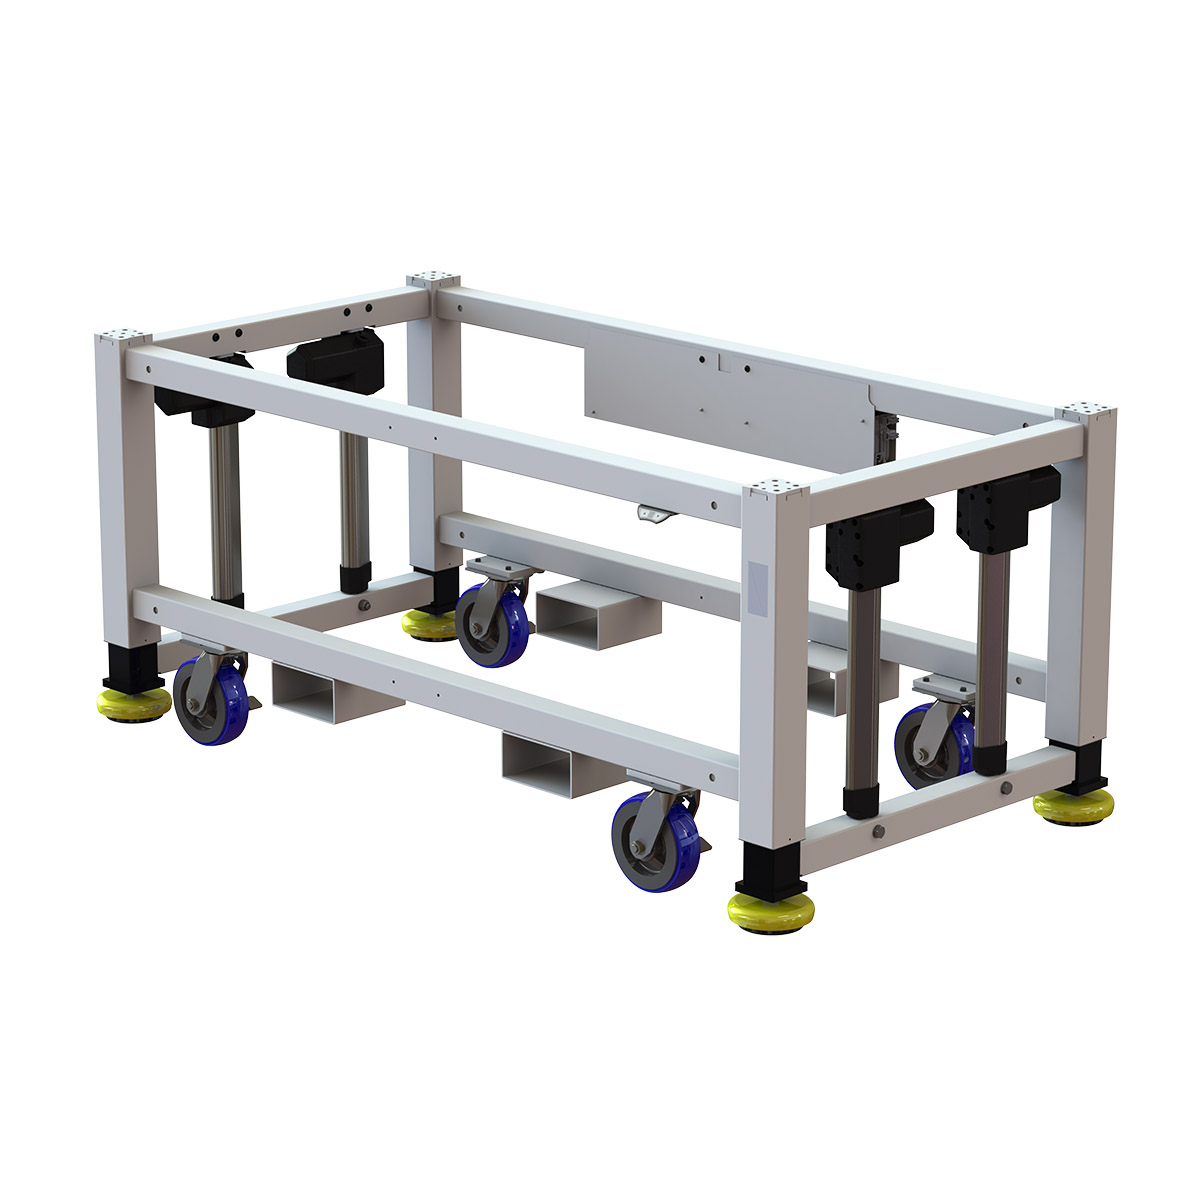 Height Adjustable Machine Base